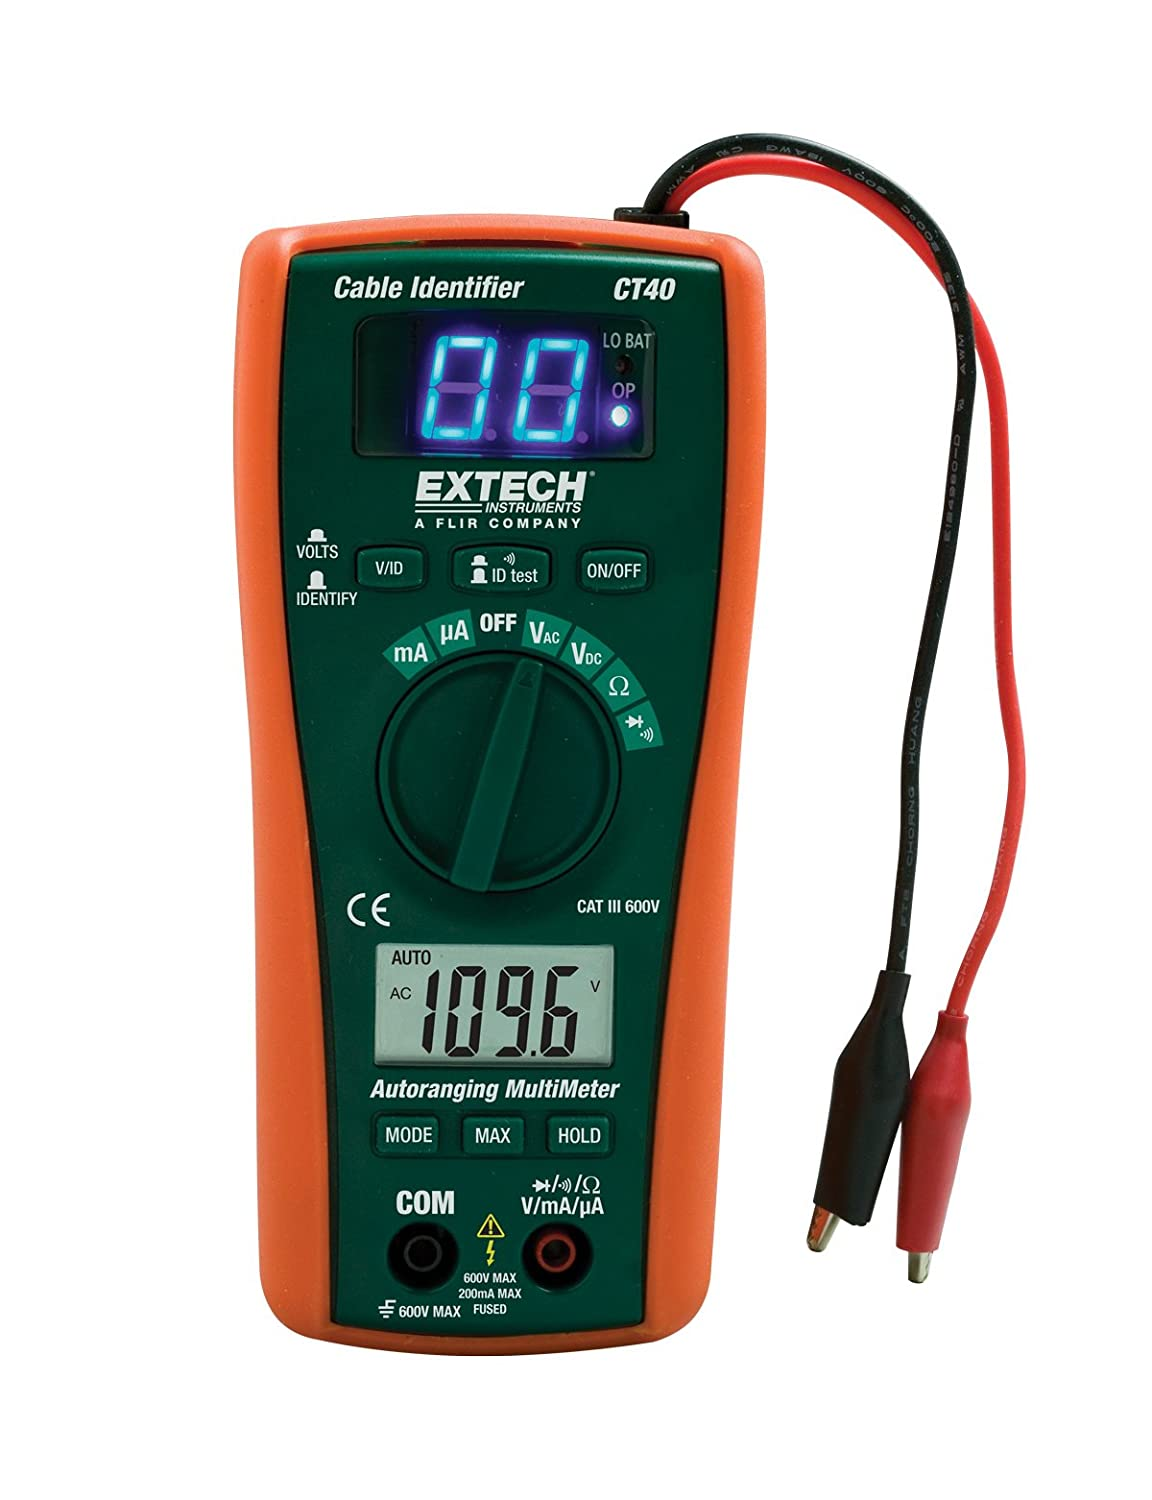 Extech Ct40 Cable Identifier Tester Kit Electrical Testers Klein 90 To 240v Ac Digital Circuit Breaker Finder Trade Me